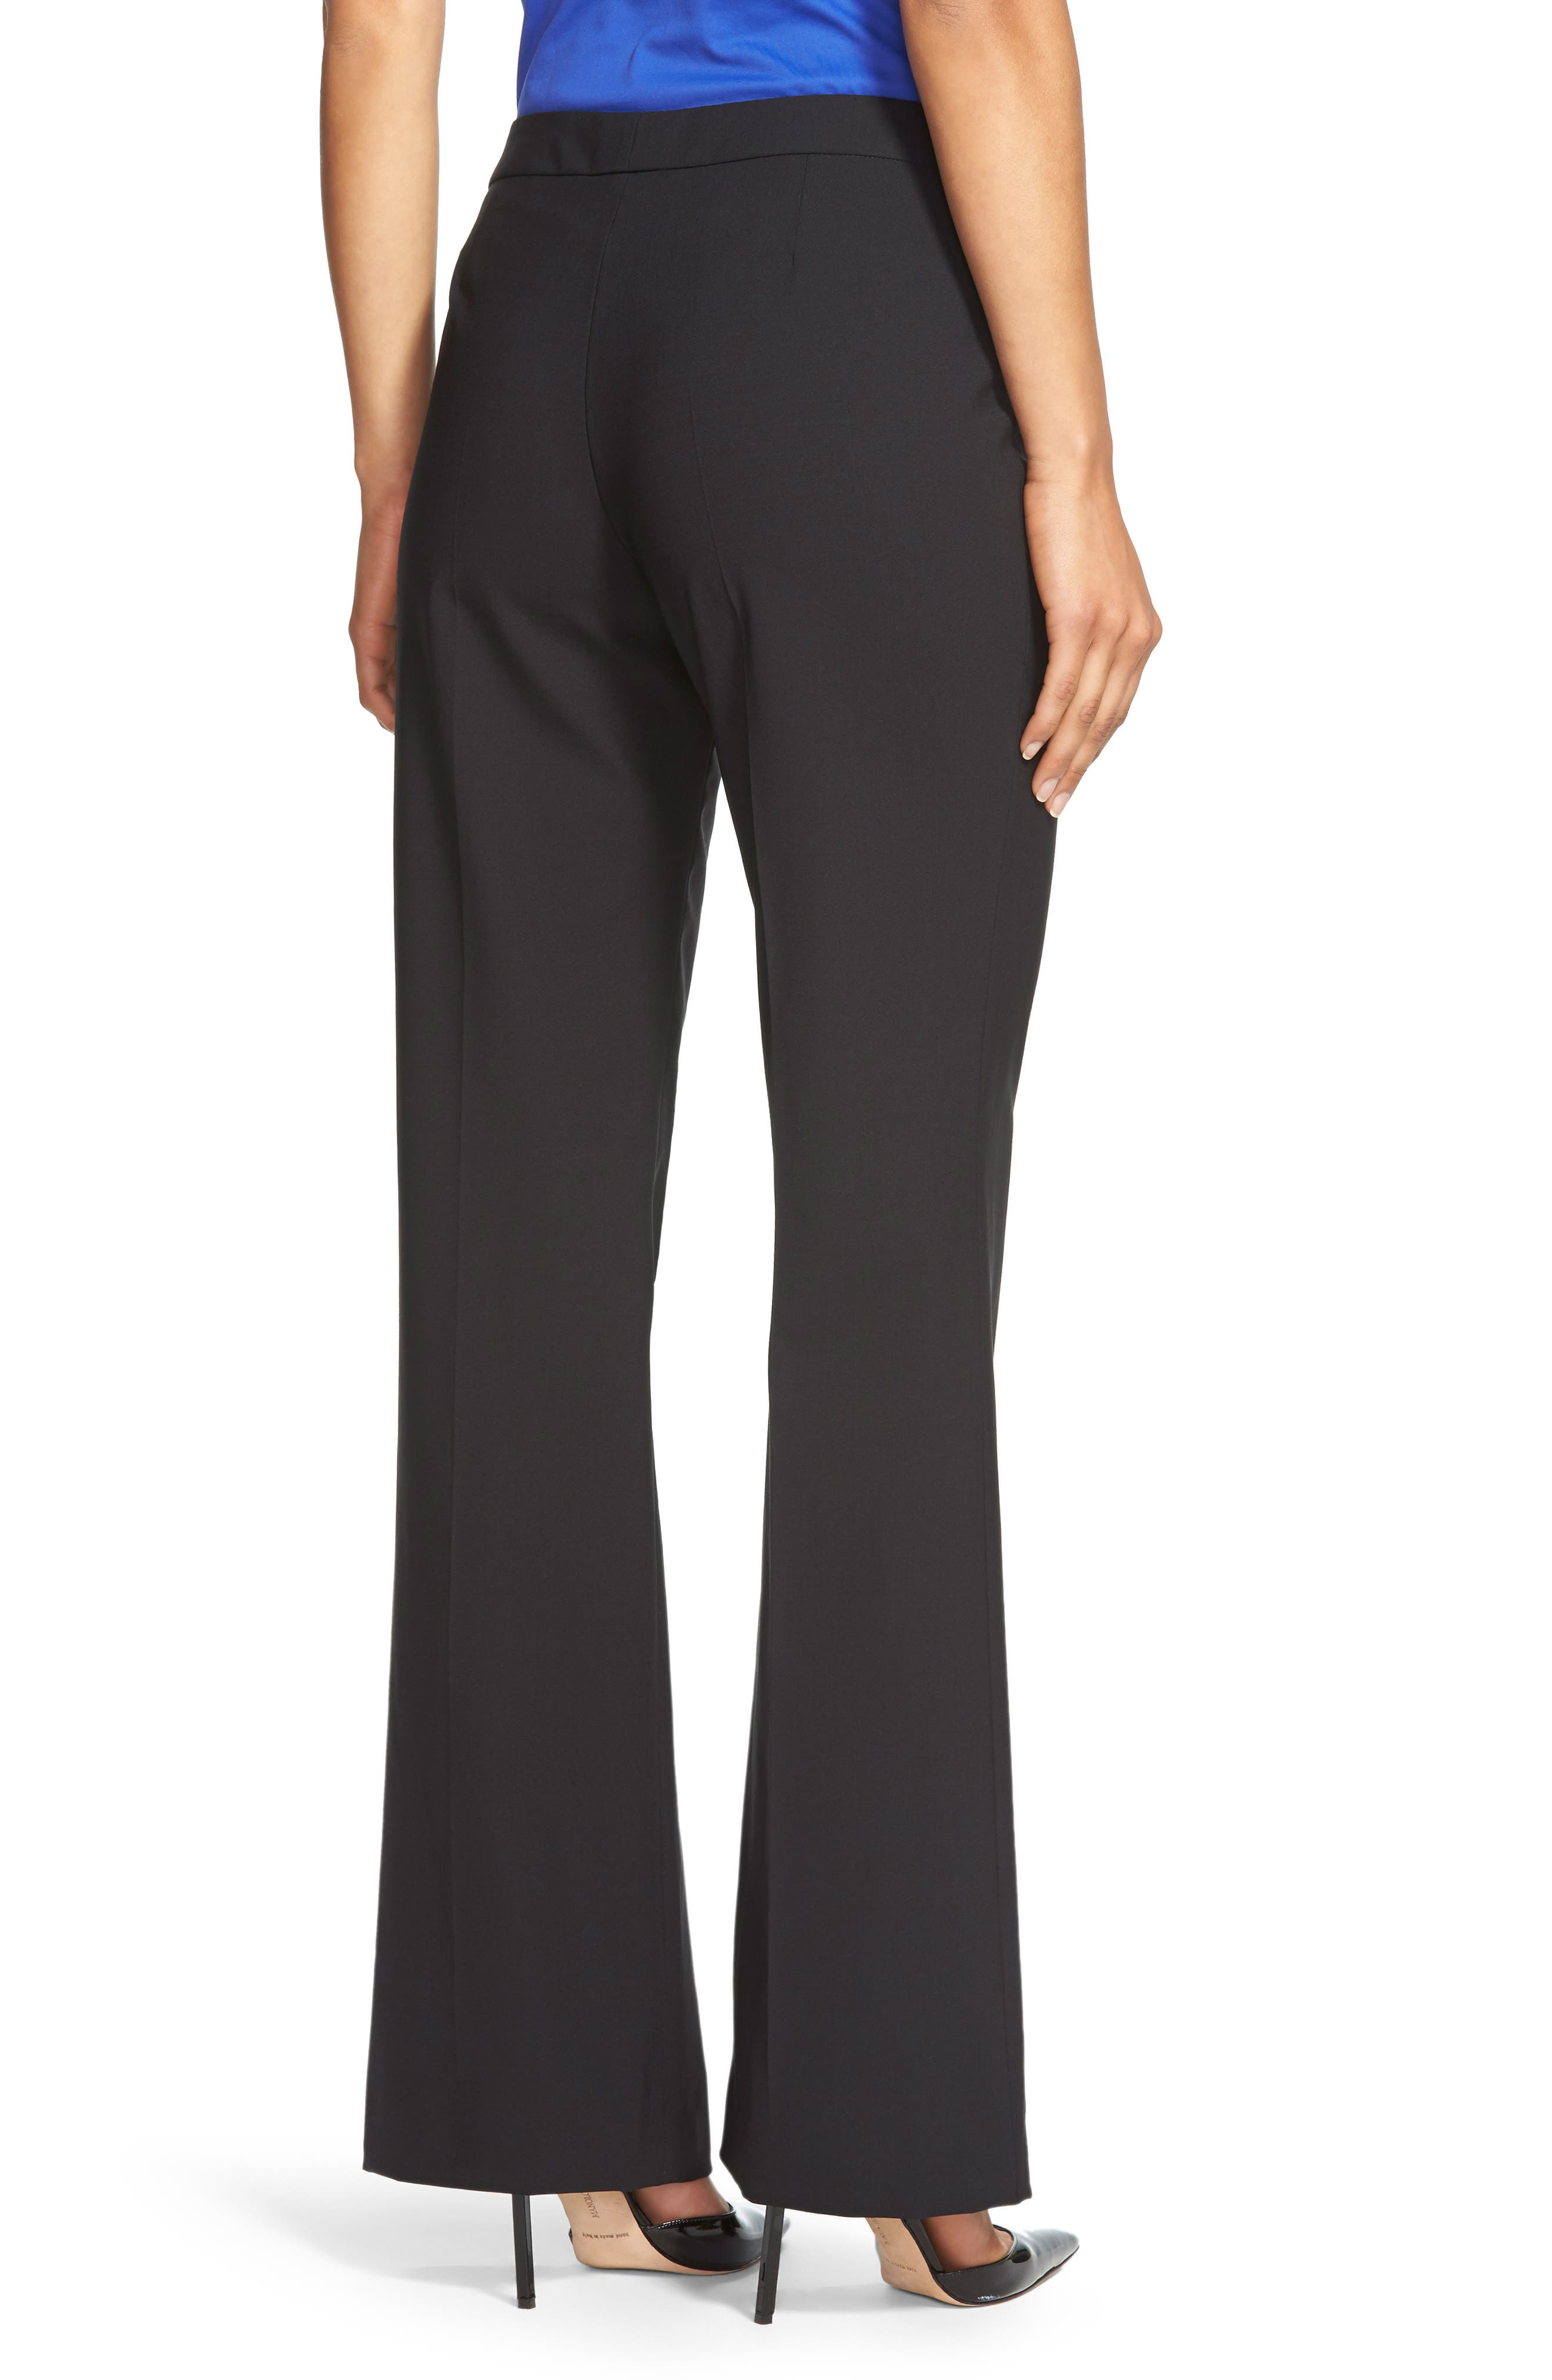 Tulea Side Zip Tropical Stretch Wool Trousers,                             Alternate thumbnail 2, color,                             BLACK